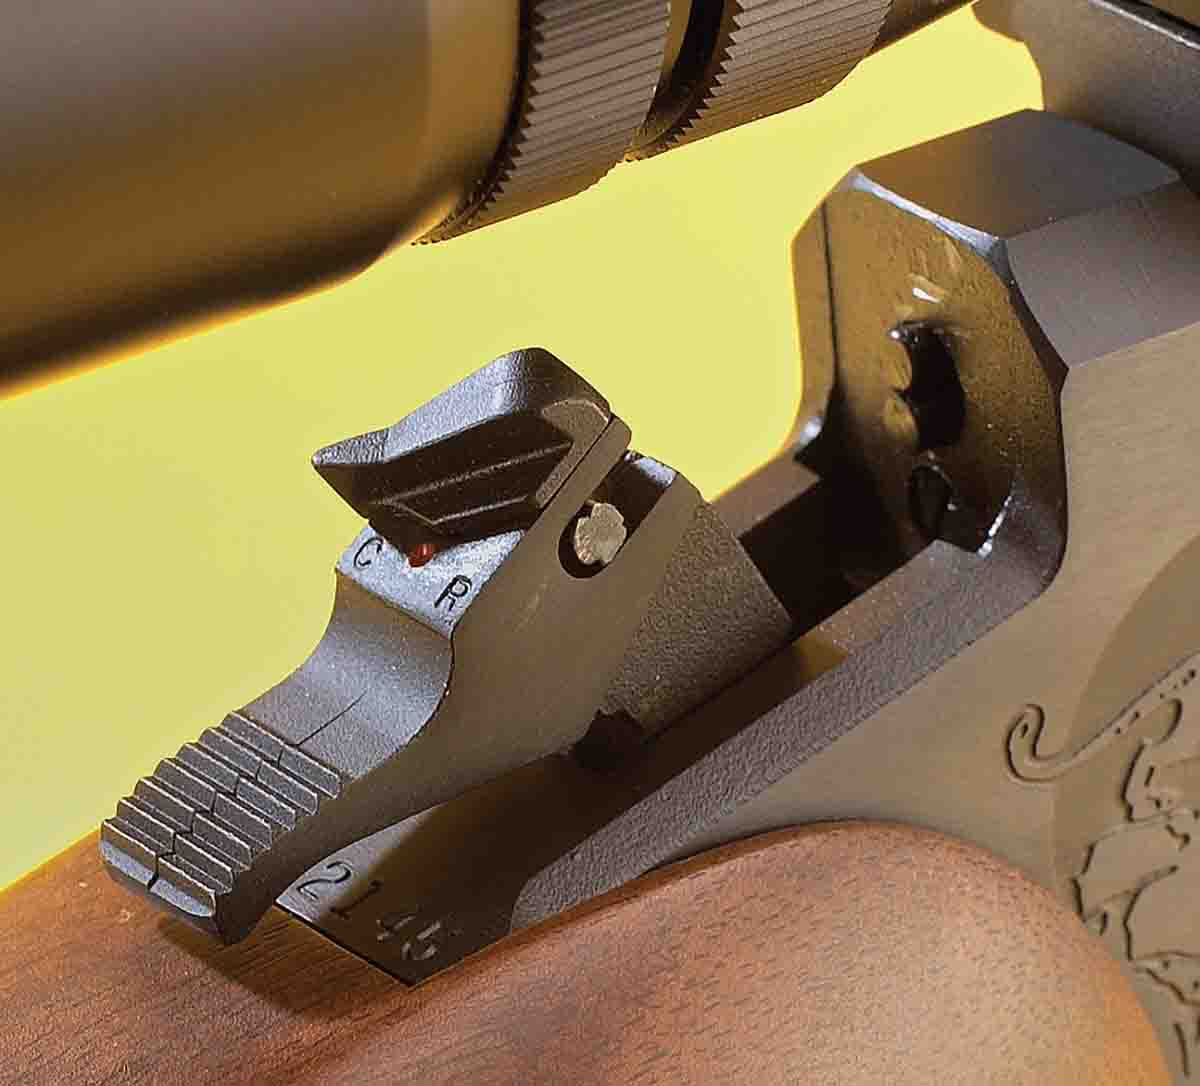 The hammer on the Contender is made to fire both rimfire and centerfire barrels. Note the dual firing pins just forward of the hammer.